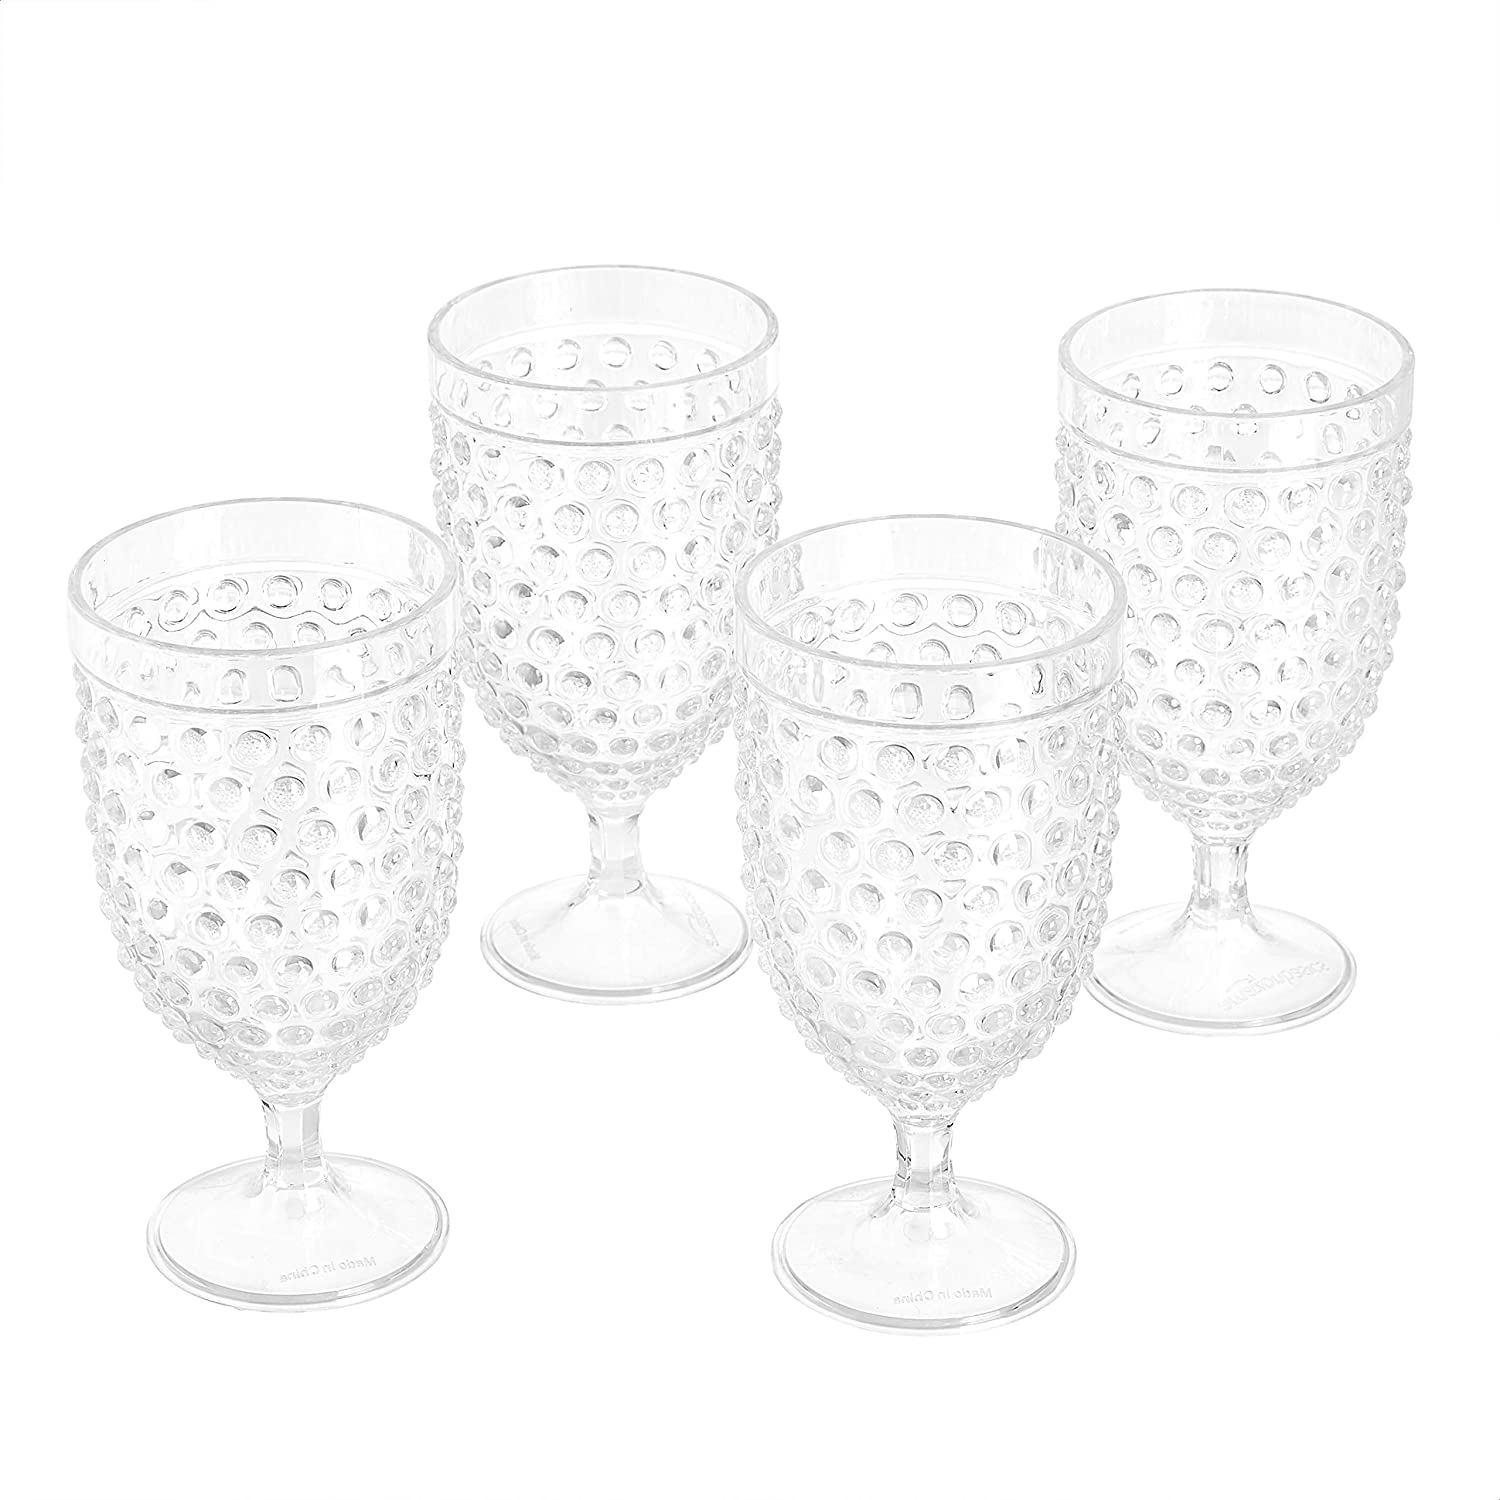 Amazon Basics Tritan Hobnail Texture Footed Glasses 1 - Tea Free shipping anywhere in Tucson Mall the nation Iced